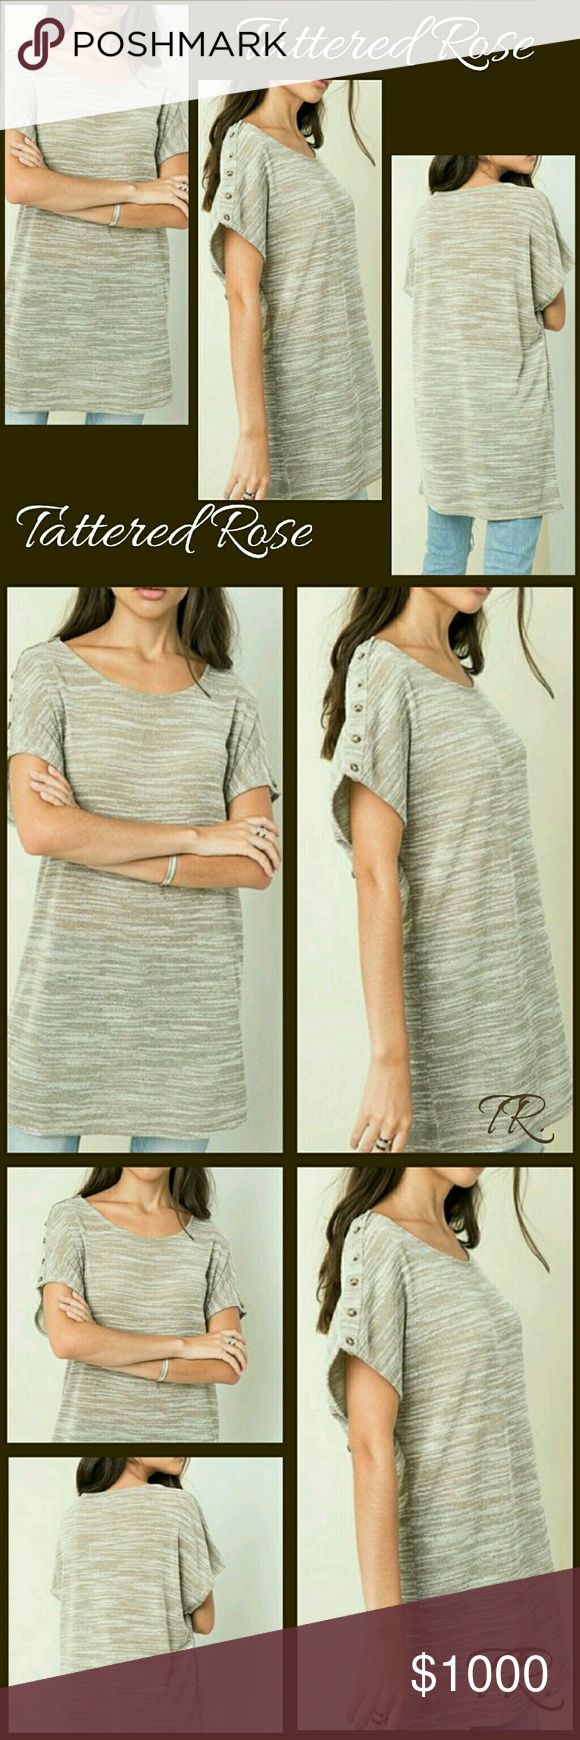 COMING SOON! Two Tone Tunic🍒30%Off Bundles🍒 Simplicity at its best! Take this tunic and run with it! This is the perfect top to accesorize! Add a scarf, a belt, a vest, a jean jacket or a statement necklace! Dress up or Down, your choice. Absolutely love this!  Scoop neckline, longer sleeves with button accents! Sewn with love made with 96%Rayon and 4%Spandex Tattered Rose Tops Tunics